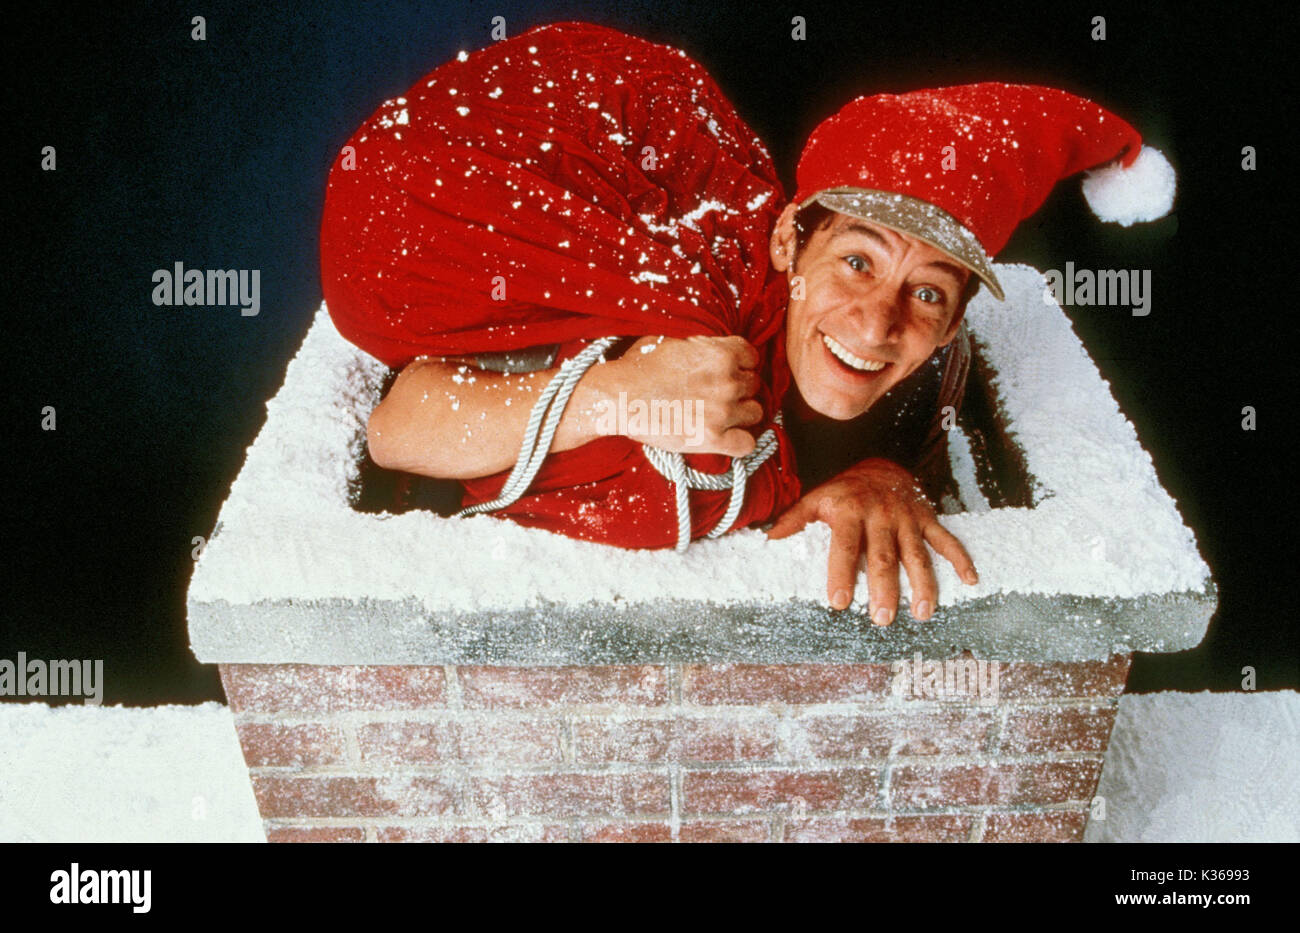 Ernest Christmas.Ernest Saves Christmas Jim Varney Picture From The Ronald